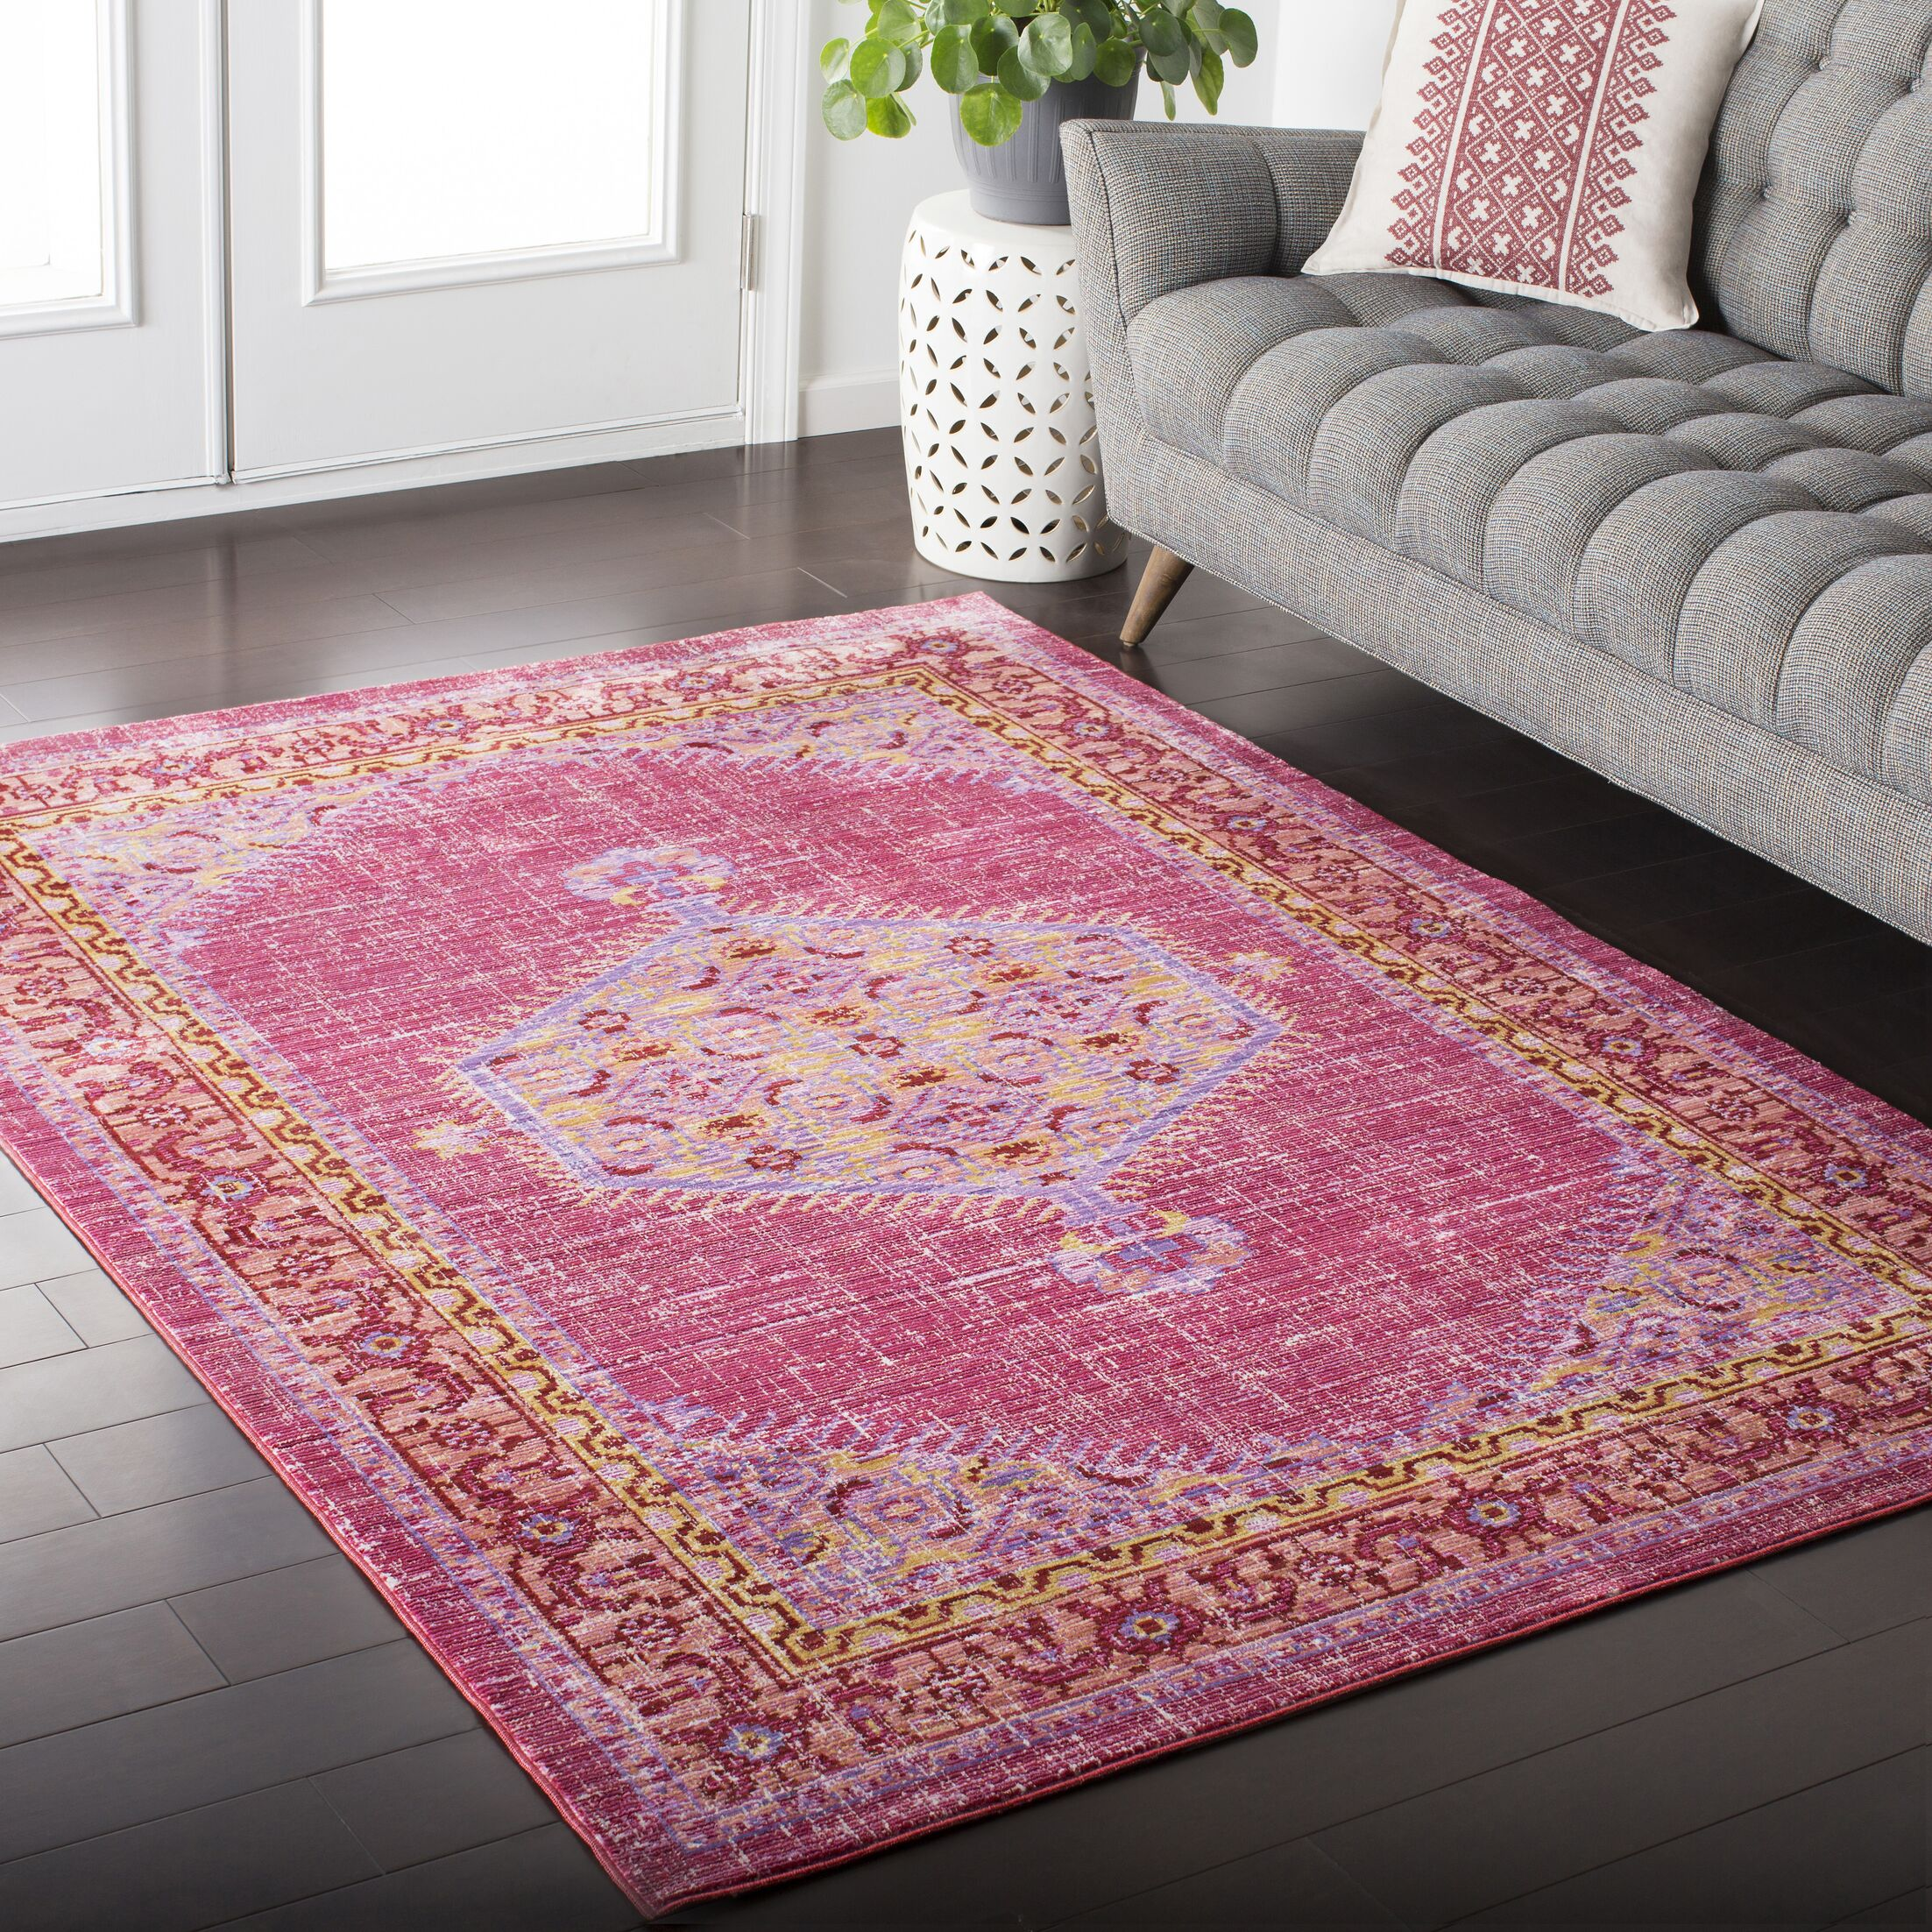 Fields Bright Pink/Bright Orange Area Rug Rug Size: Rectangle 5'3